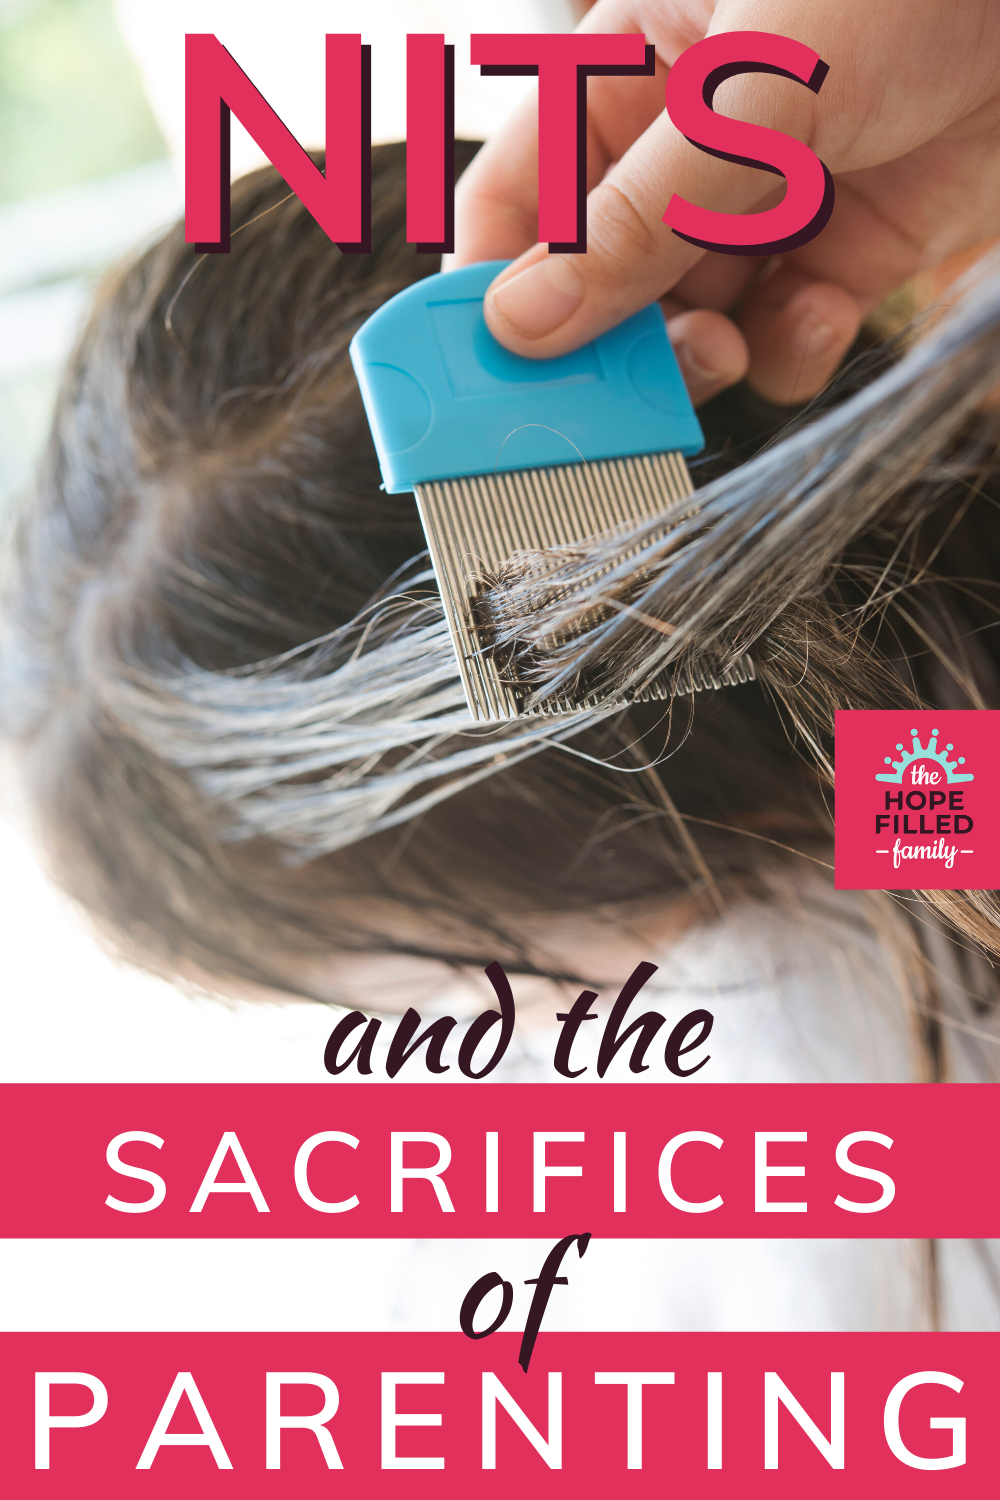 What can nits/head lice teach us about parenting, sacrifice, and the Kingdom of Heaven?